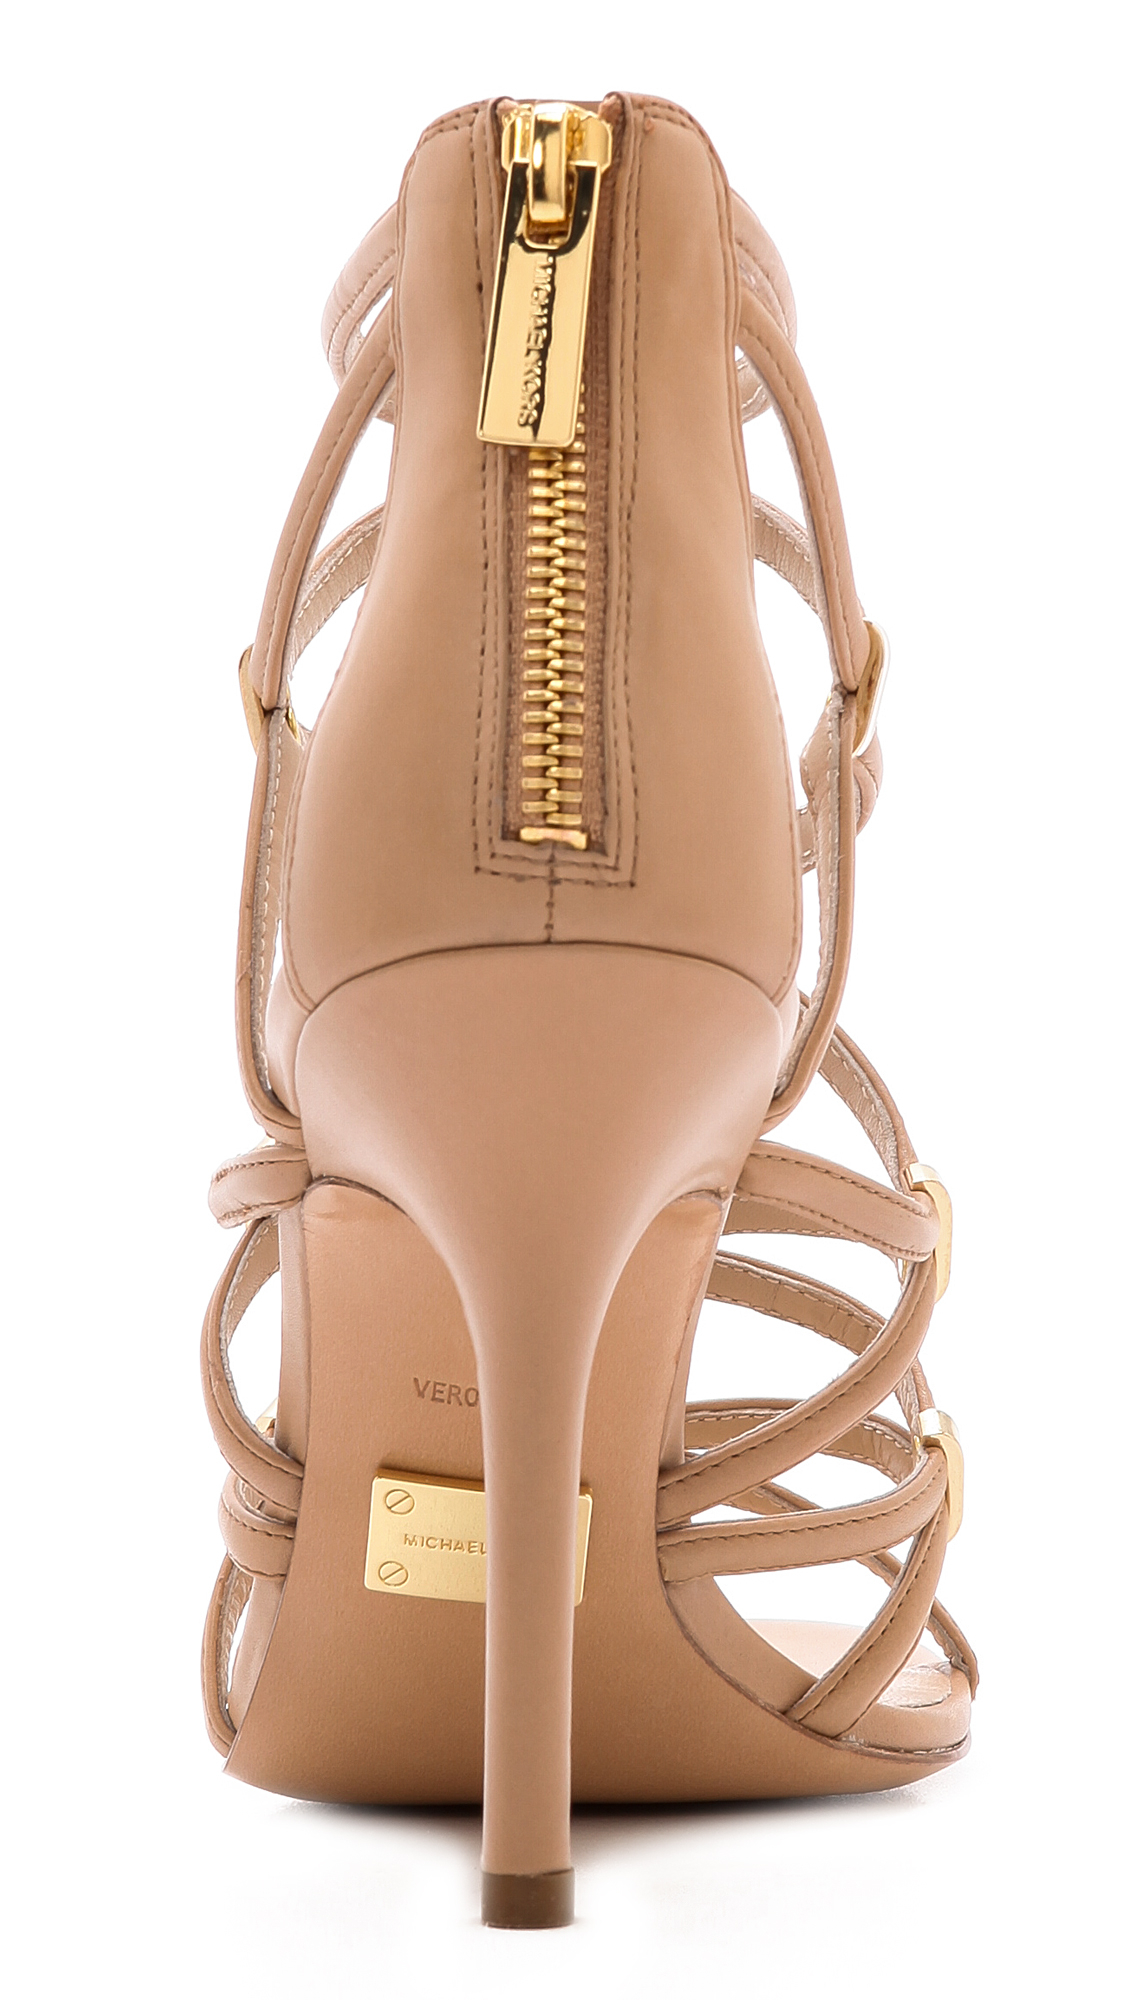 Michael Kors Charlene Strappy Sandals - Toffee in Brown - Lyst